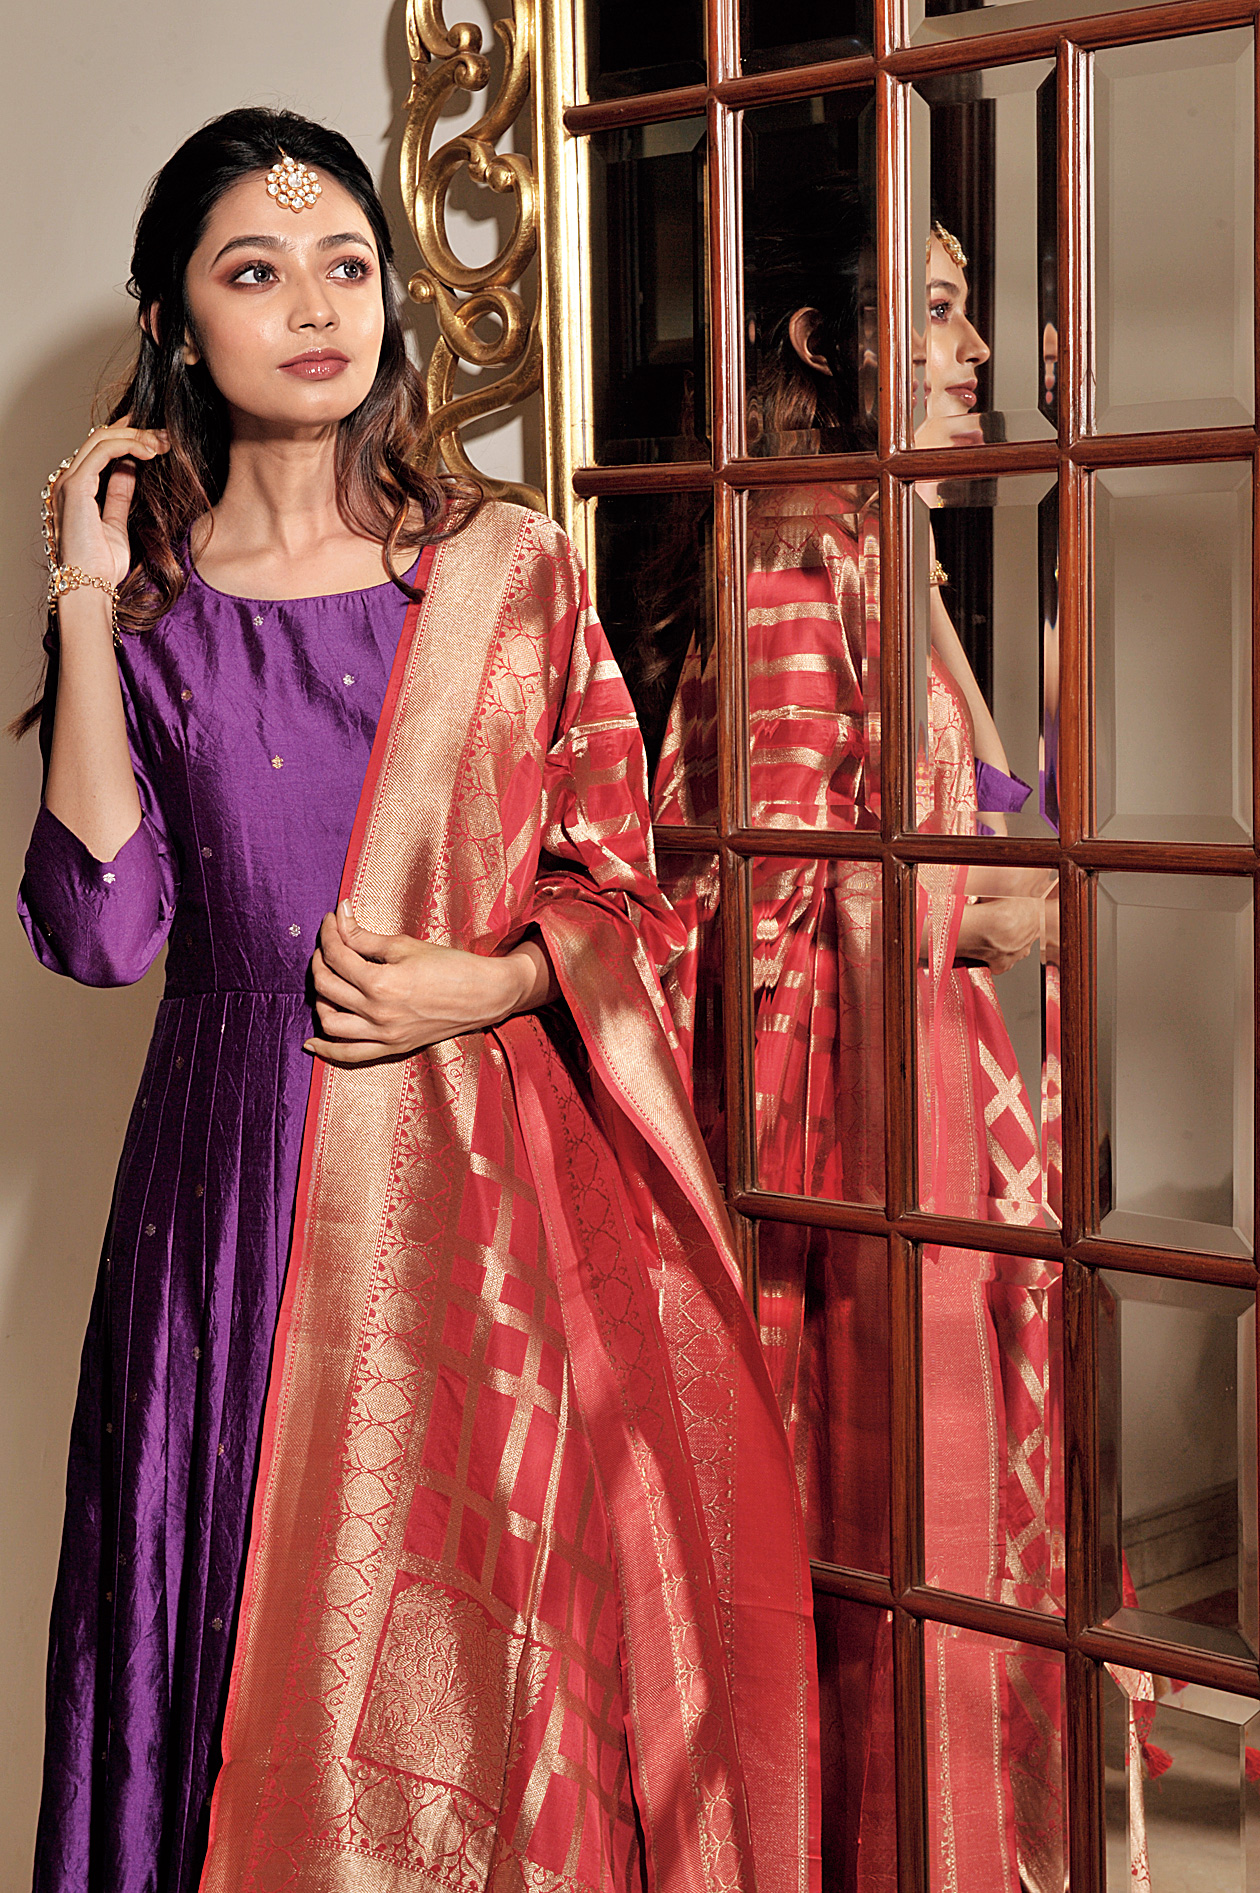 Violet vibe: Be it the puja at home or a family gathering, you can never go wrong with a classic anarkali. This ultraviolet anarkali with star bootis looks striking when paired with a red dupatta with an unconventional geometric pattern. If you want to dress it down, go for a dupatta in a more subdued hue. Kundan haathphool and maangtika make the look apt for Diwali